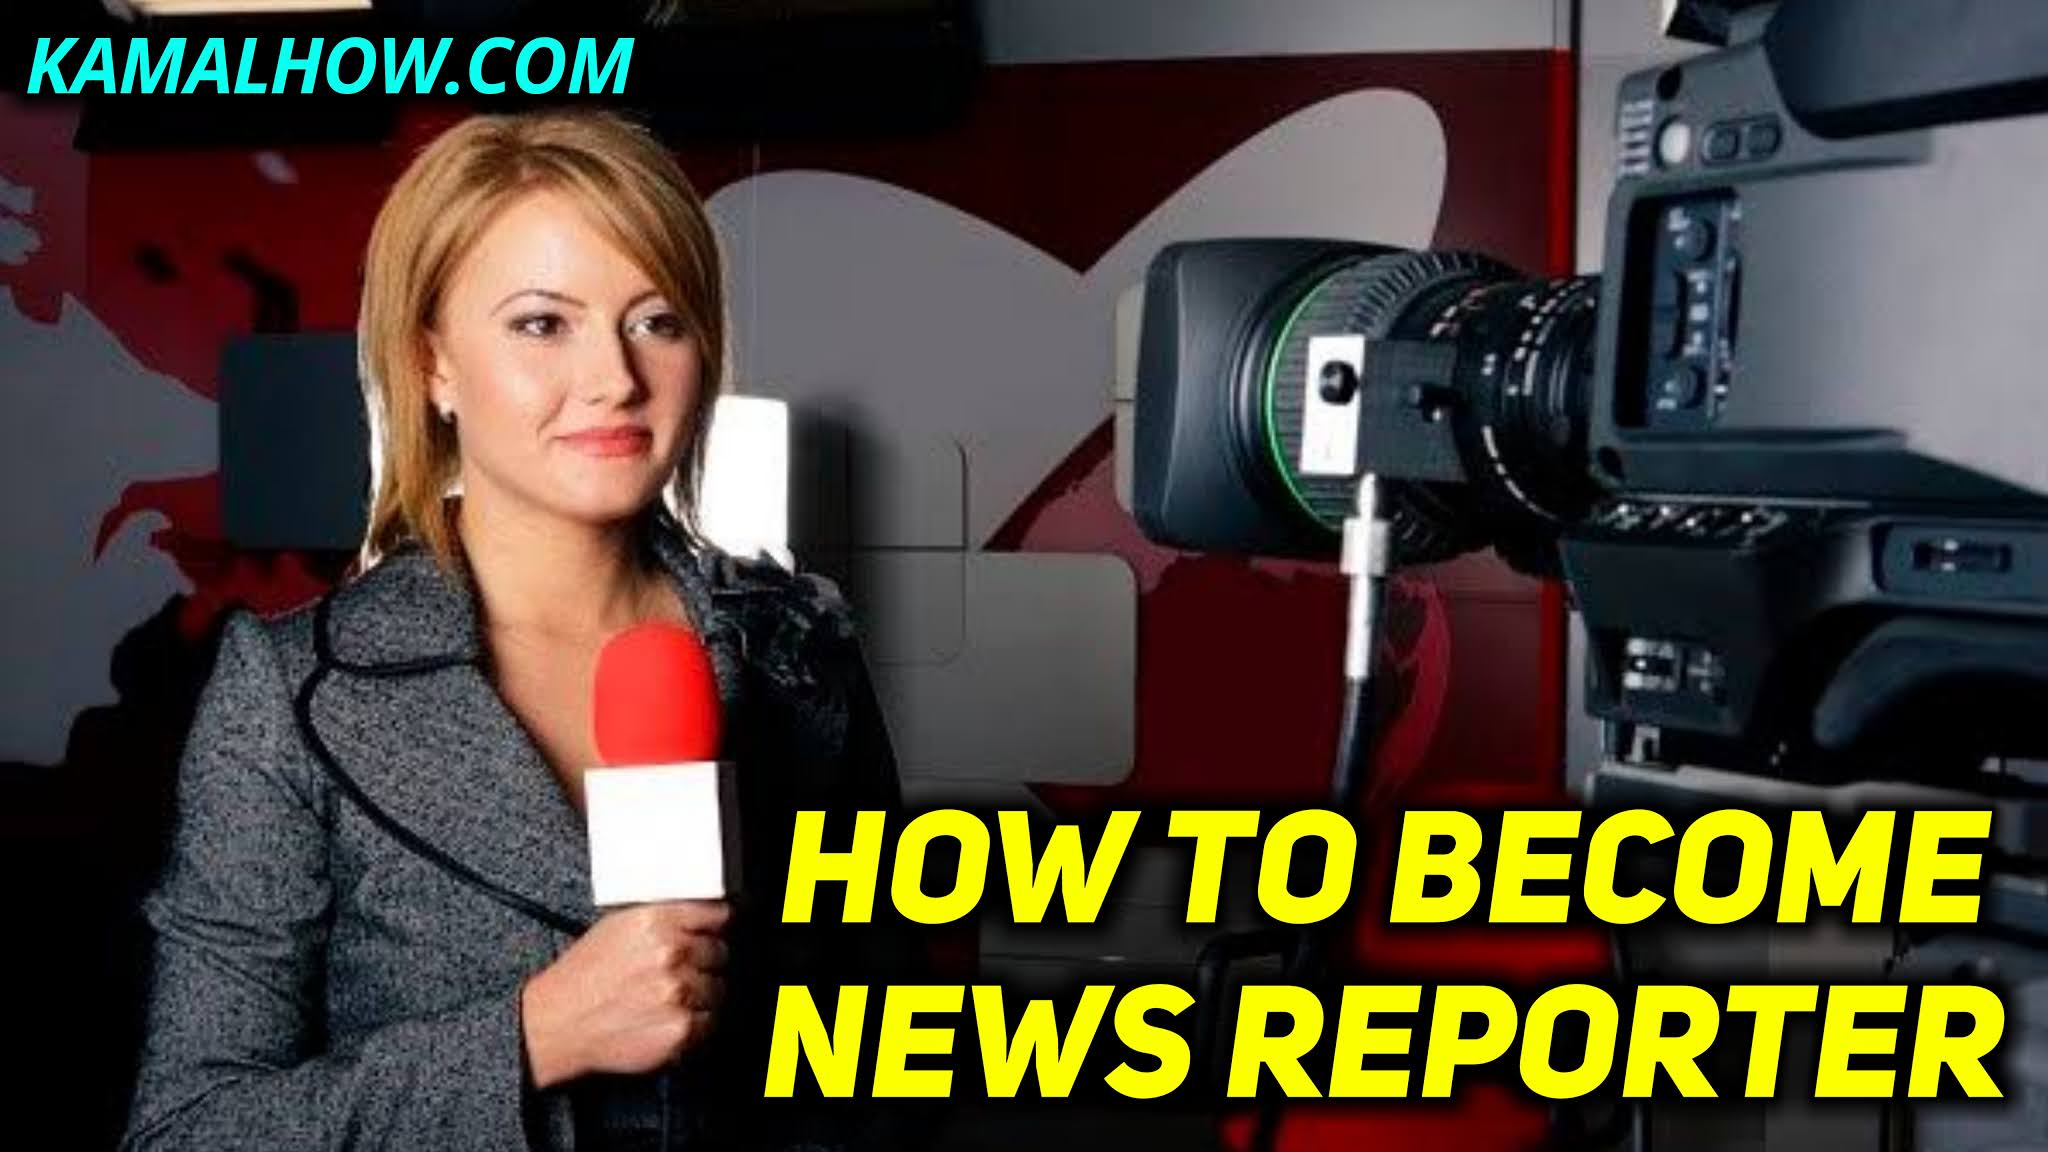 News reporter kaise bane, news reporter ki salary, news reporter kya hota hai, news reporter ki job, how to become news anchor after 12th, beome a reporter, news reporter, journalist news anchor job kaise paye, become a journalist without a degree, become a journalist uk, 12th pass patrakar kaise bane, patrakar kaise bane in hindi, dainik jagran, amar ujala patrakar kaise bane